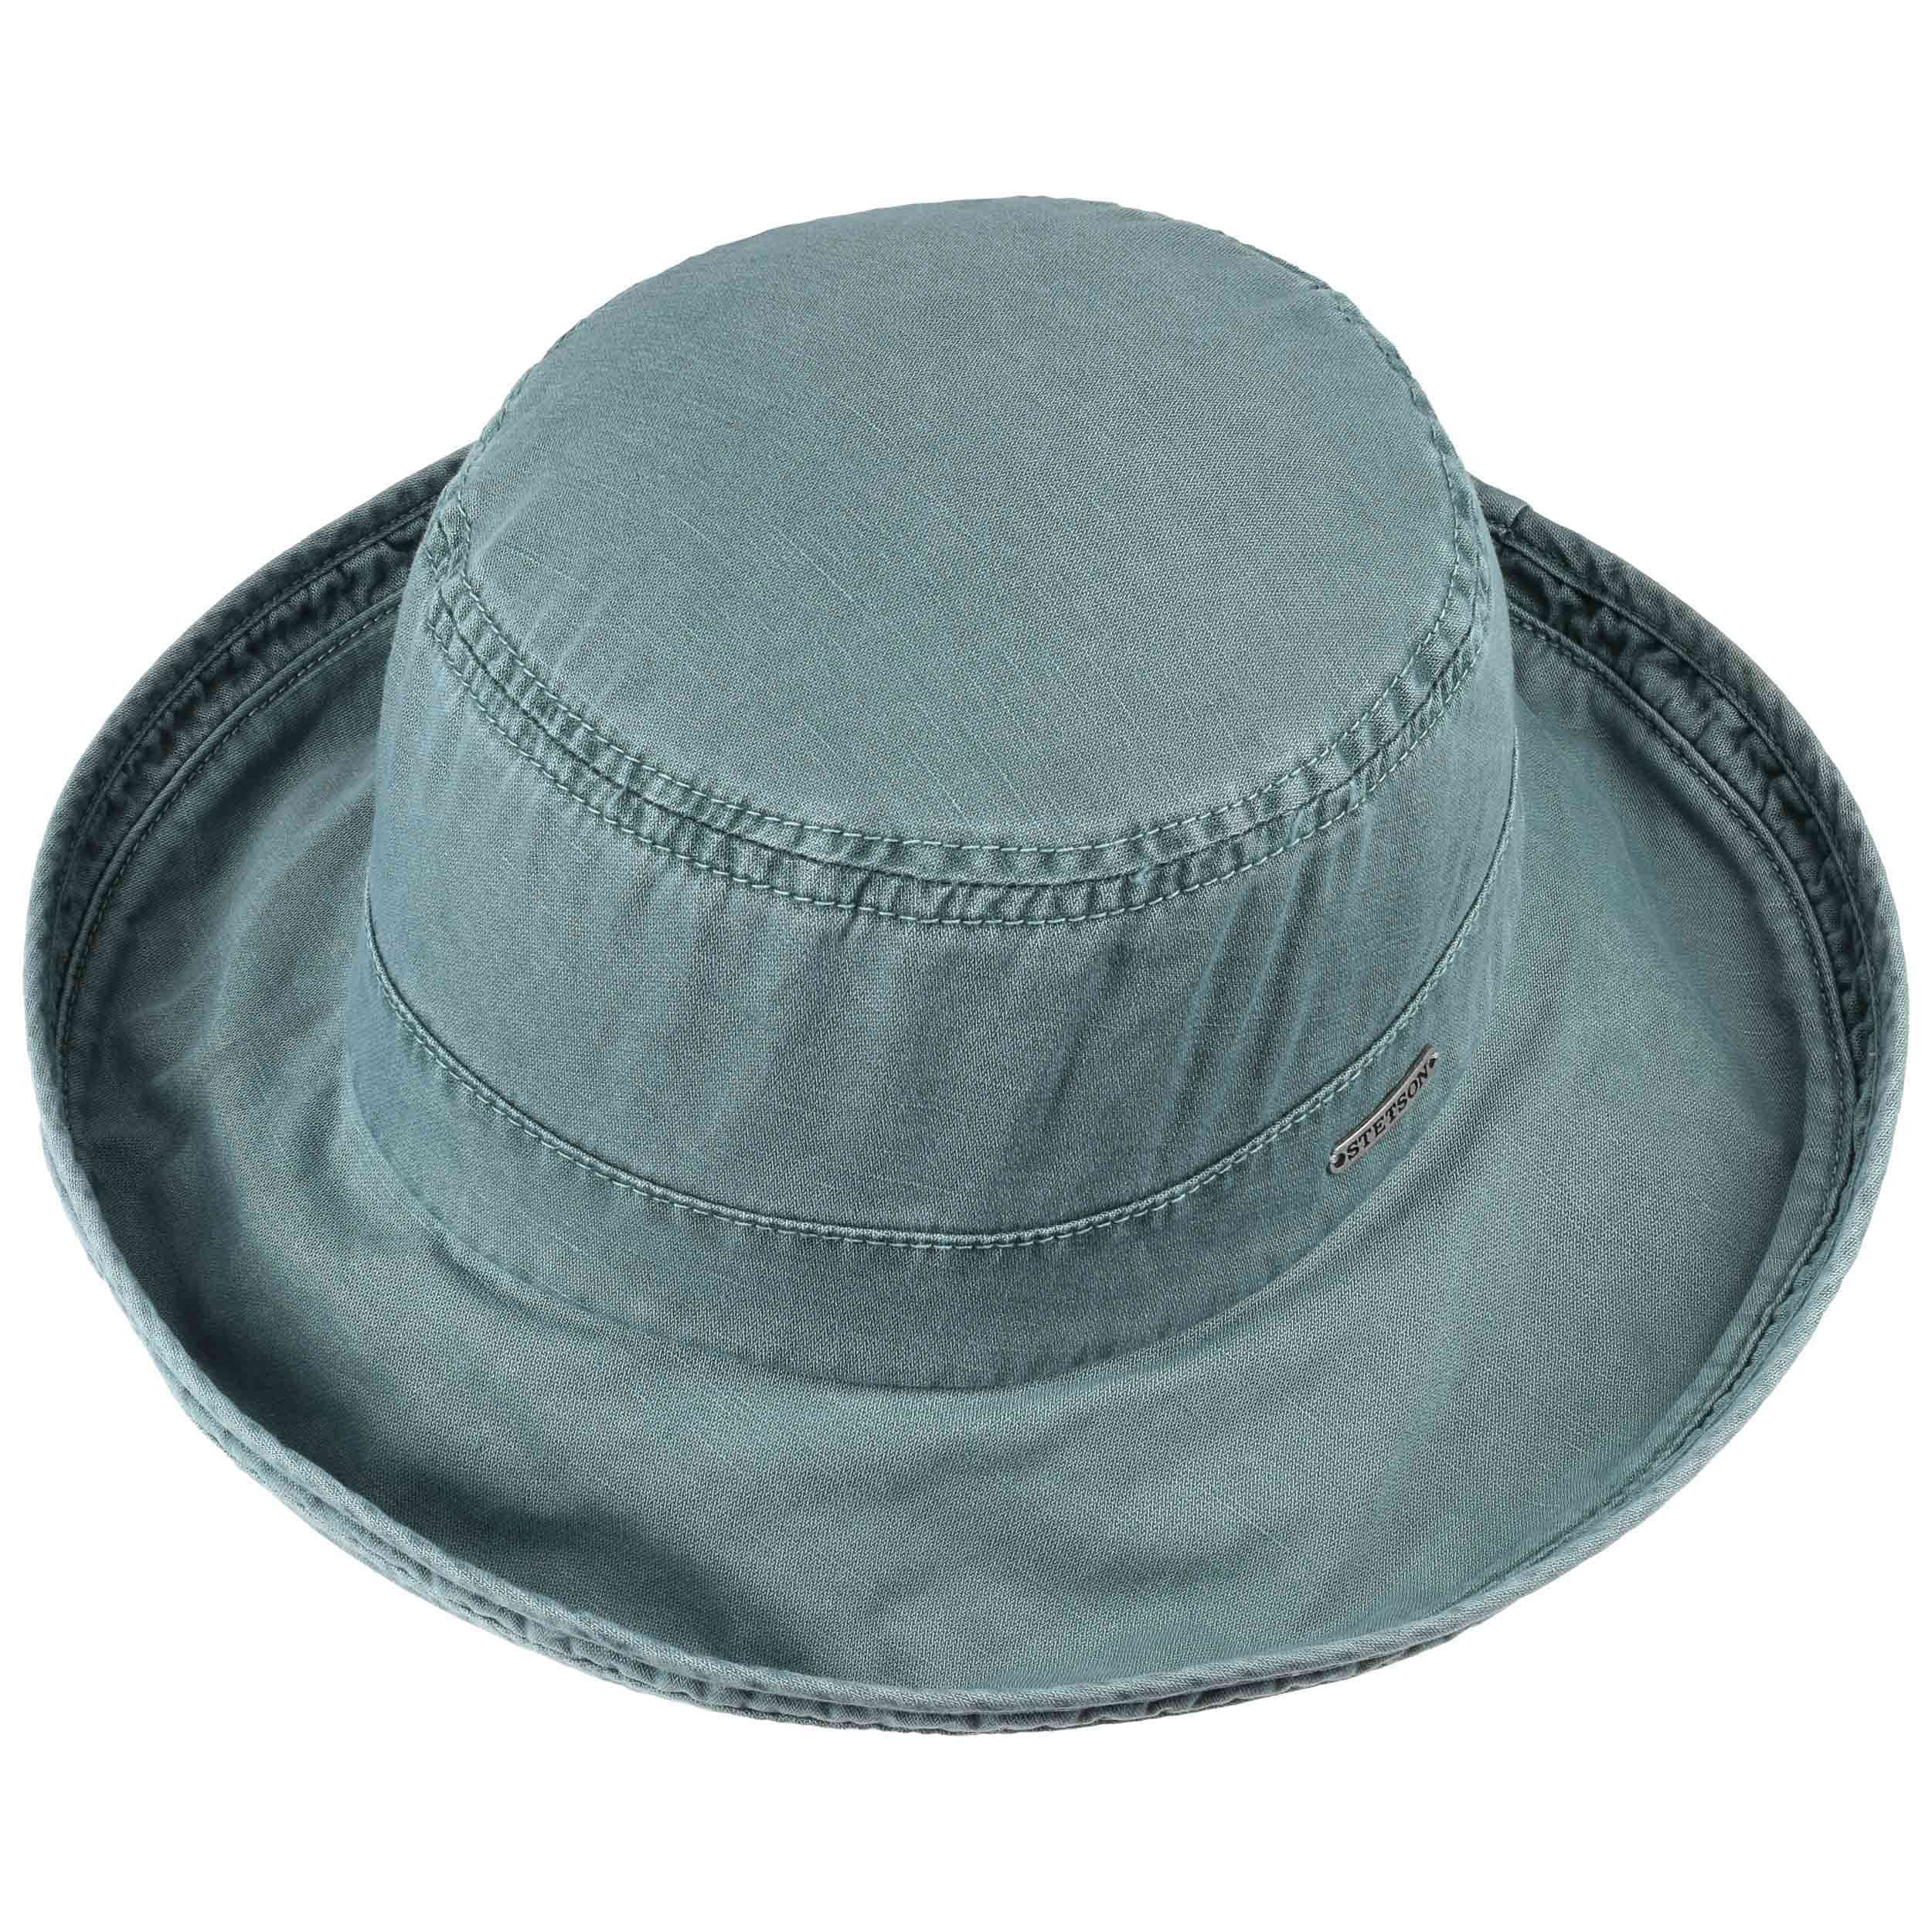 ... Dyed Cotton Floppy Hat by Stetson - navy 1 ... 0d1c4d88180